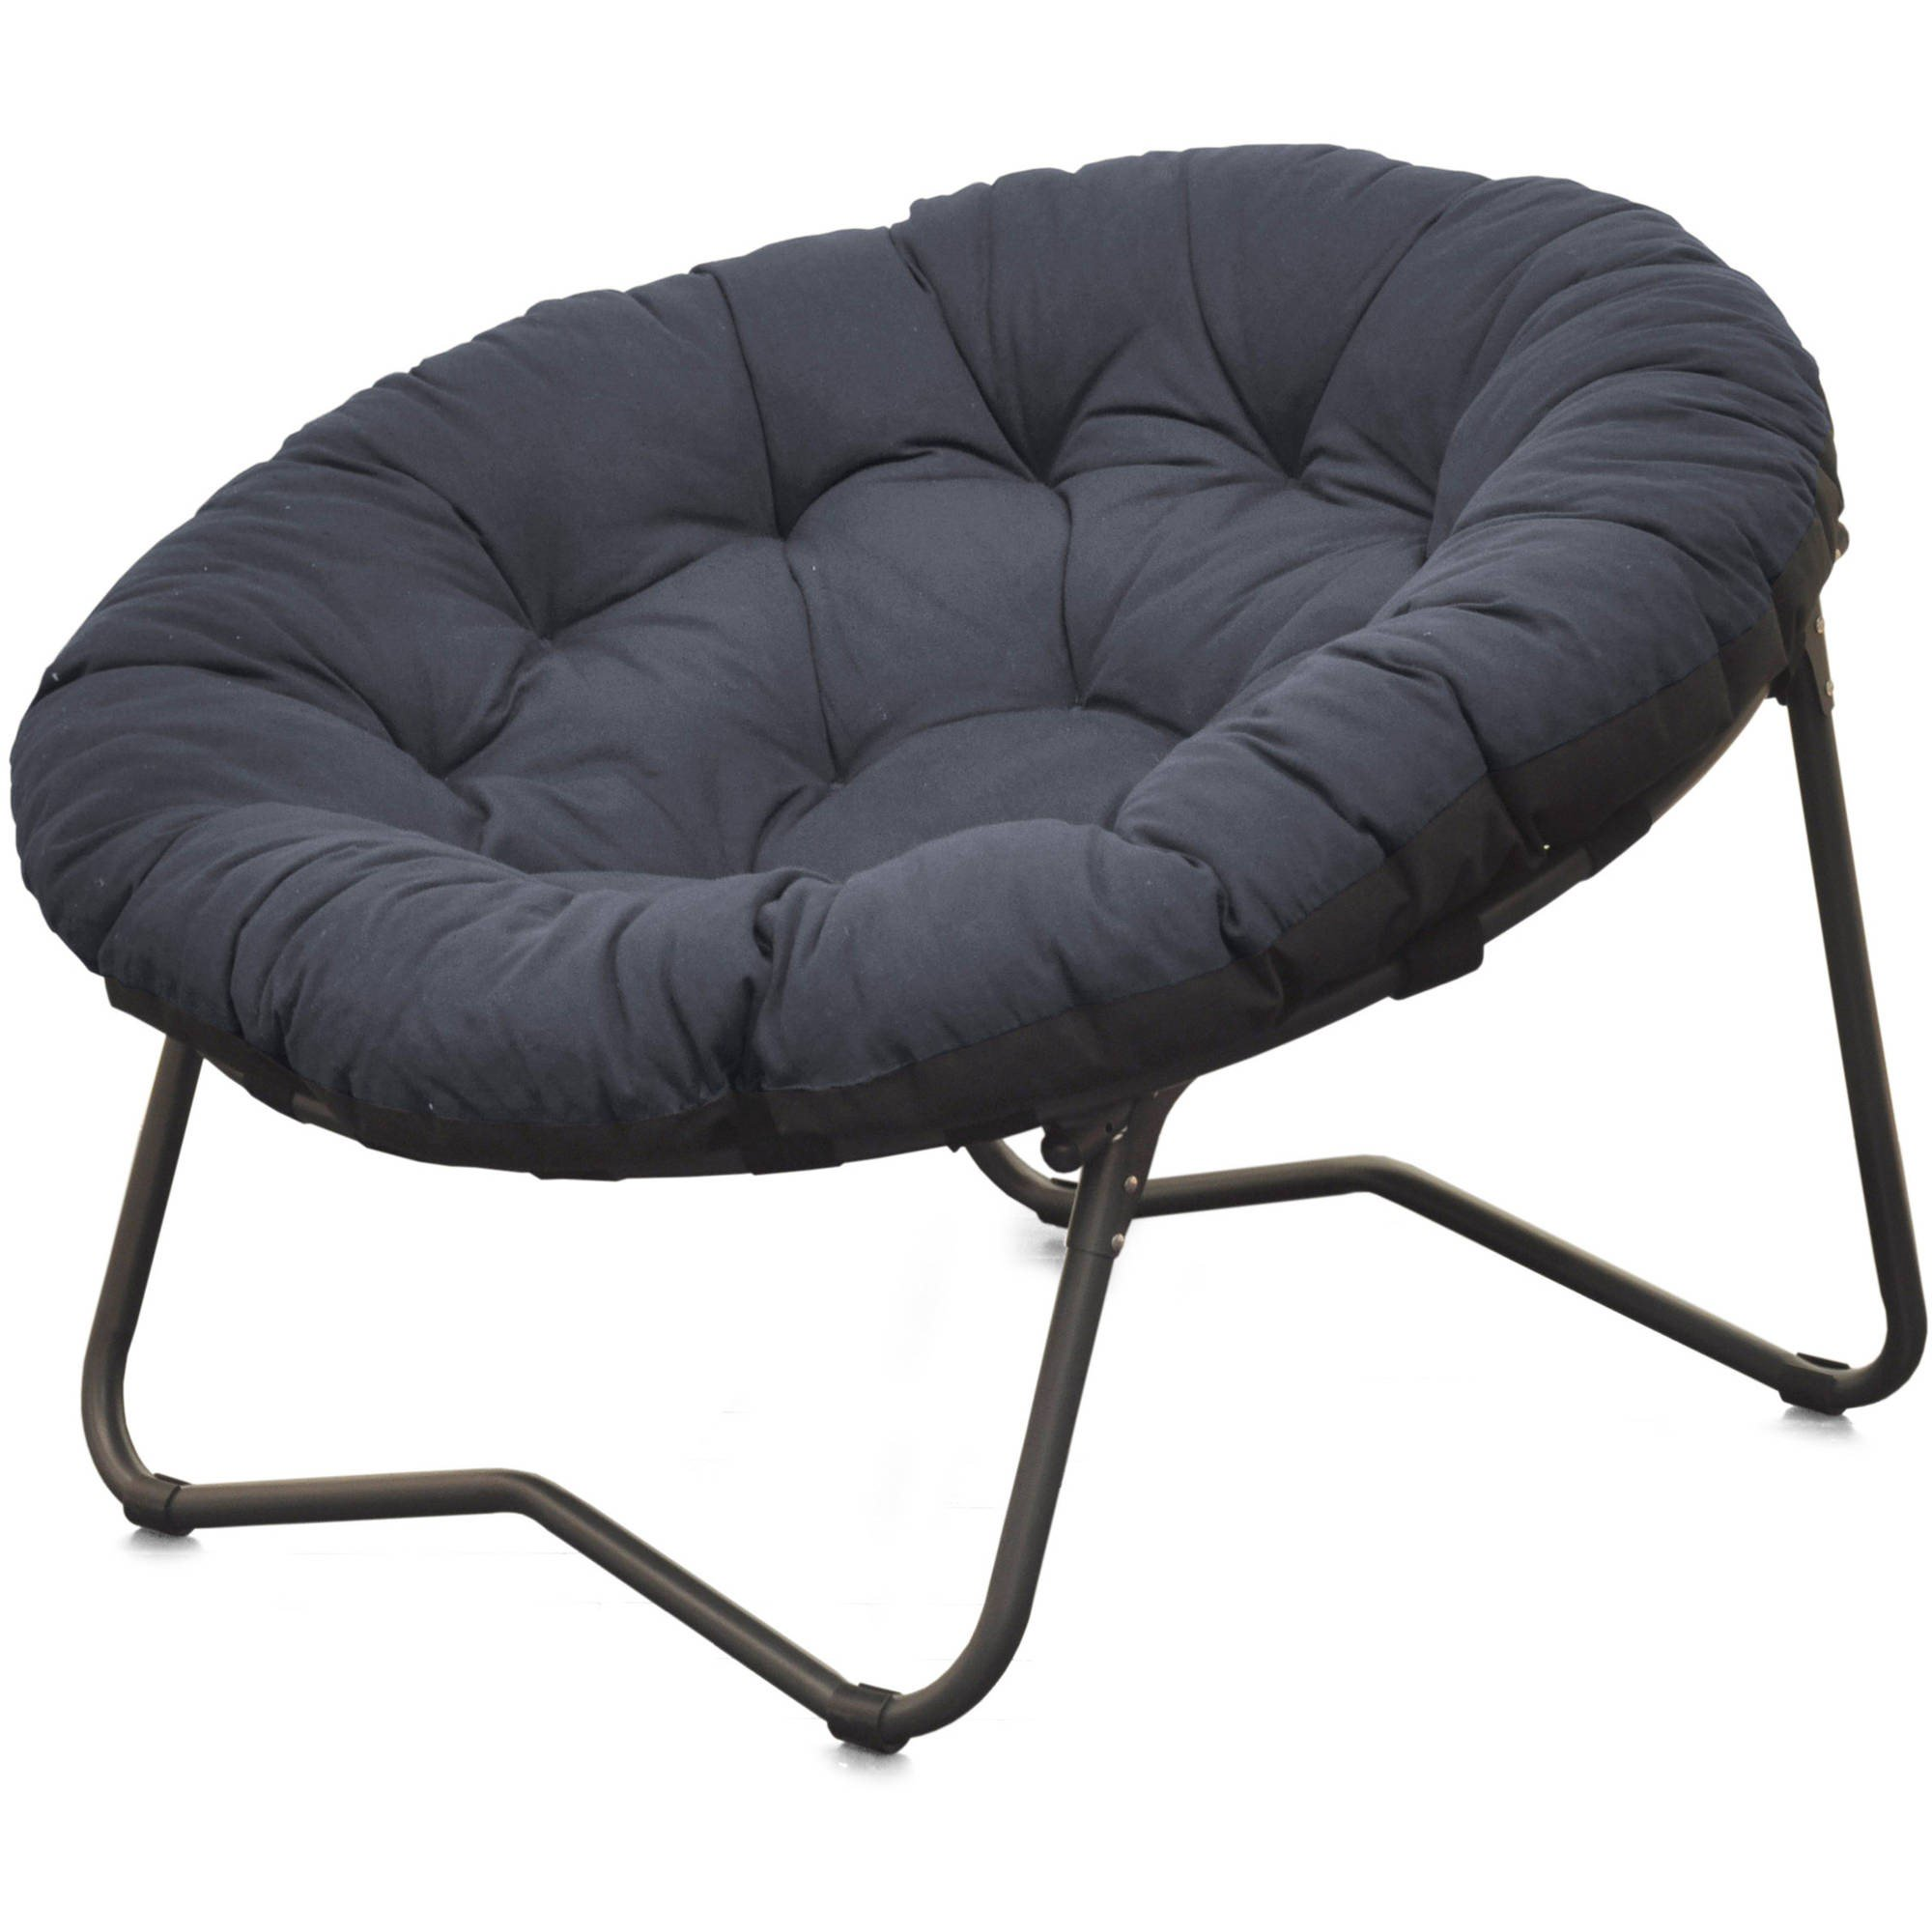 Mainstays Folding Papasan Chair, Navy